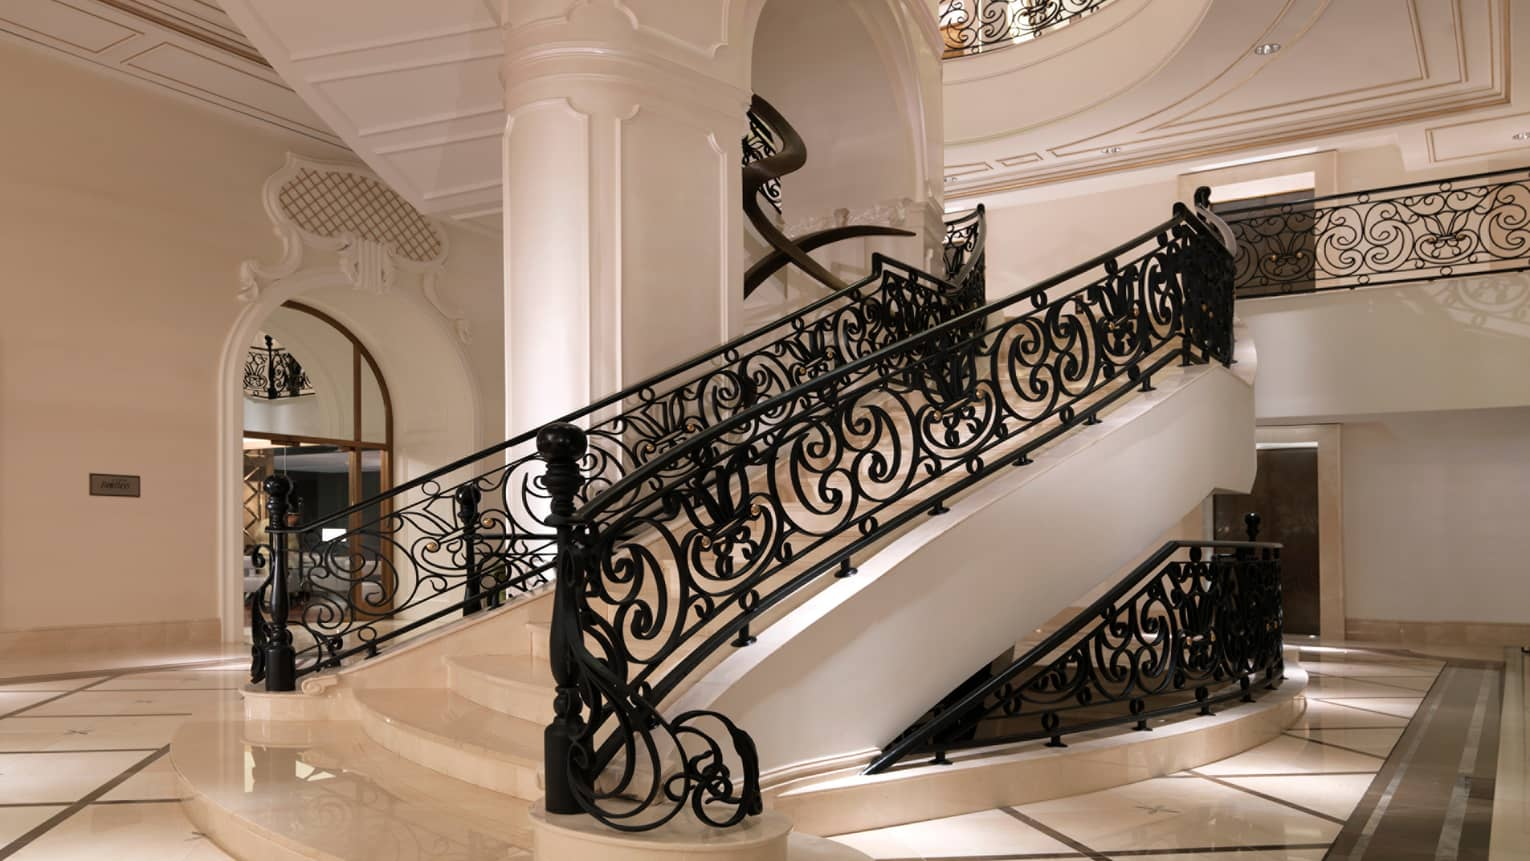 Hotel Beaux-Arts style white staircase with decorative black railings, white pillar, white tile floor